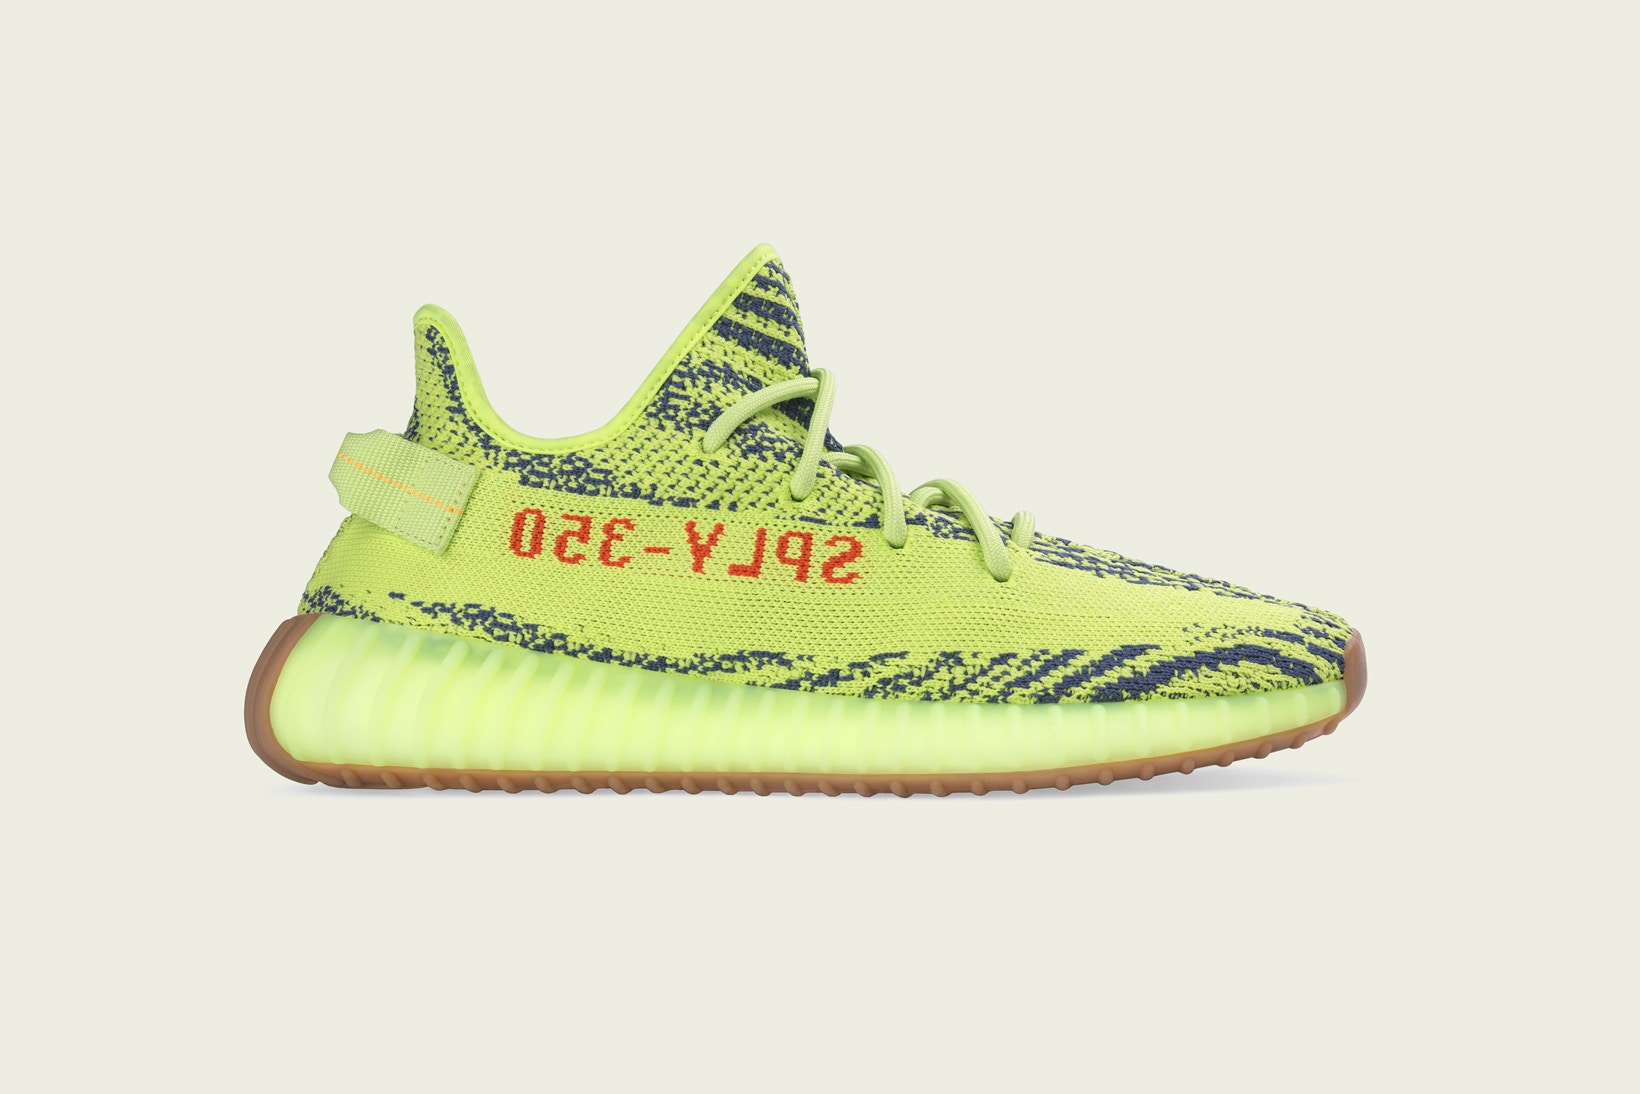 adidas Originals YEEZY BOOST 350 V2 Semi Frozen Yellow: a lista de lojas